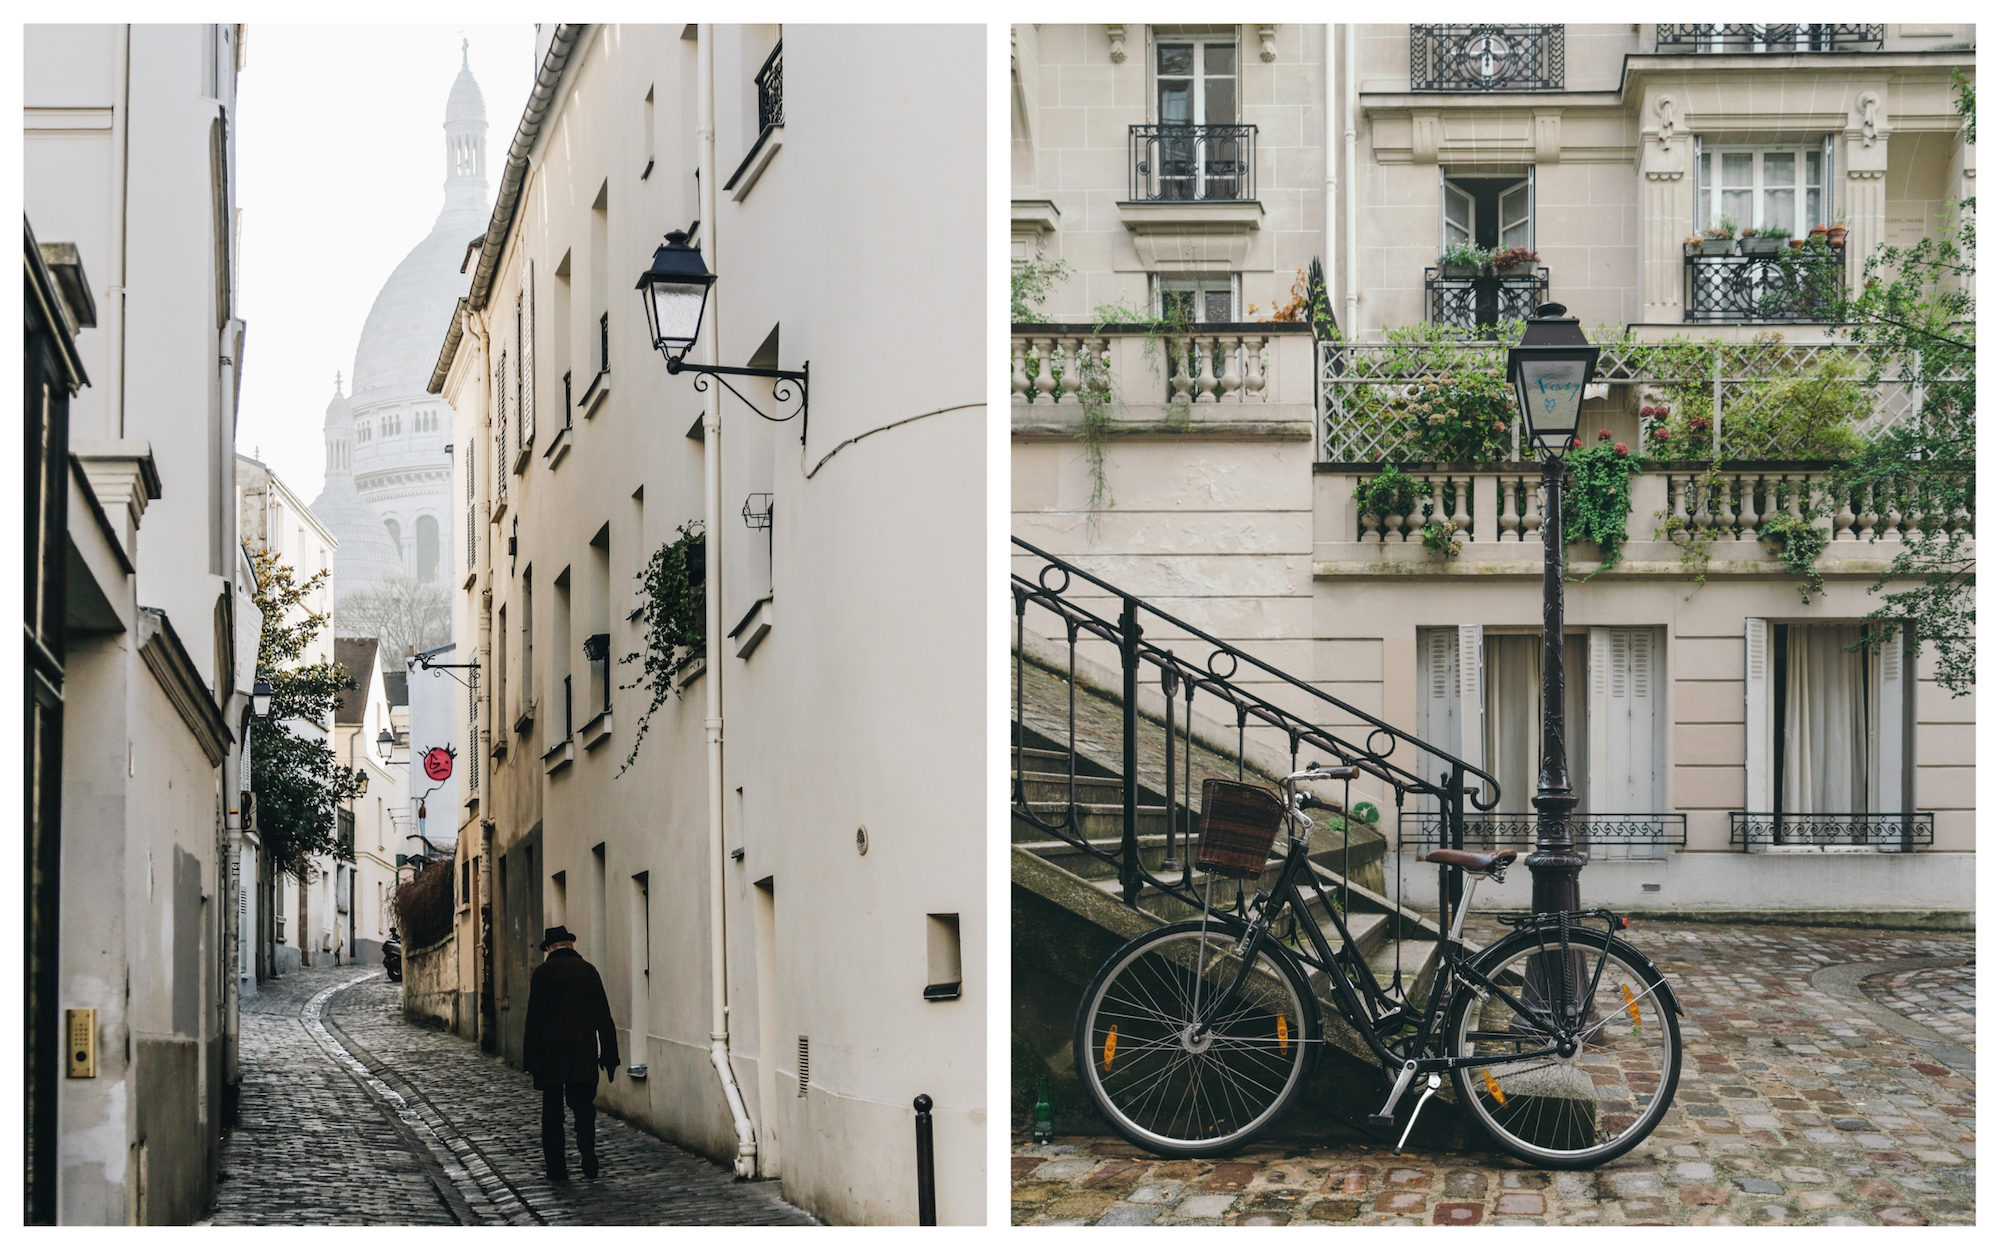 Before everyone is back in the city after the summer holidays, Paris empties, leaving you to enjoy the quiet streets of Montmartre like this lone man walking towards the Sacré Coeur (left). A bike with a basket parked on a cobblestone square in Montmartre (right).